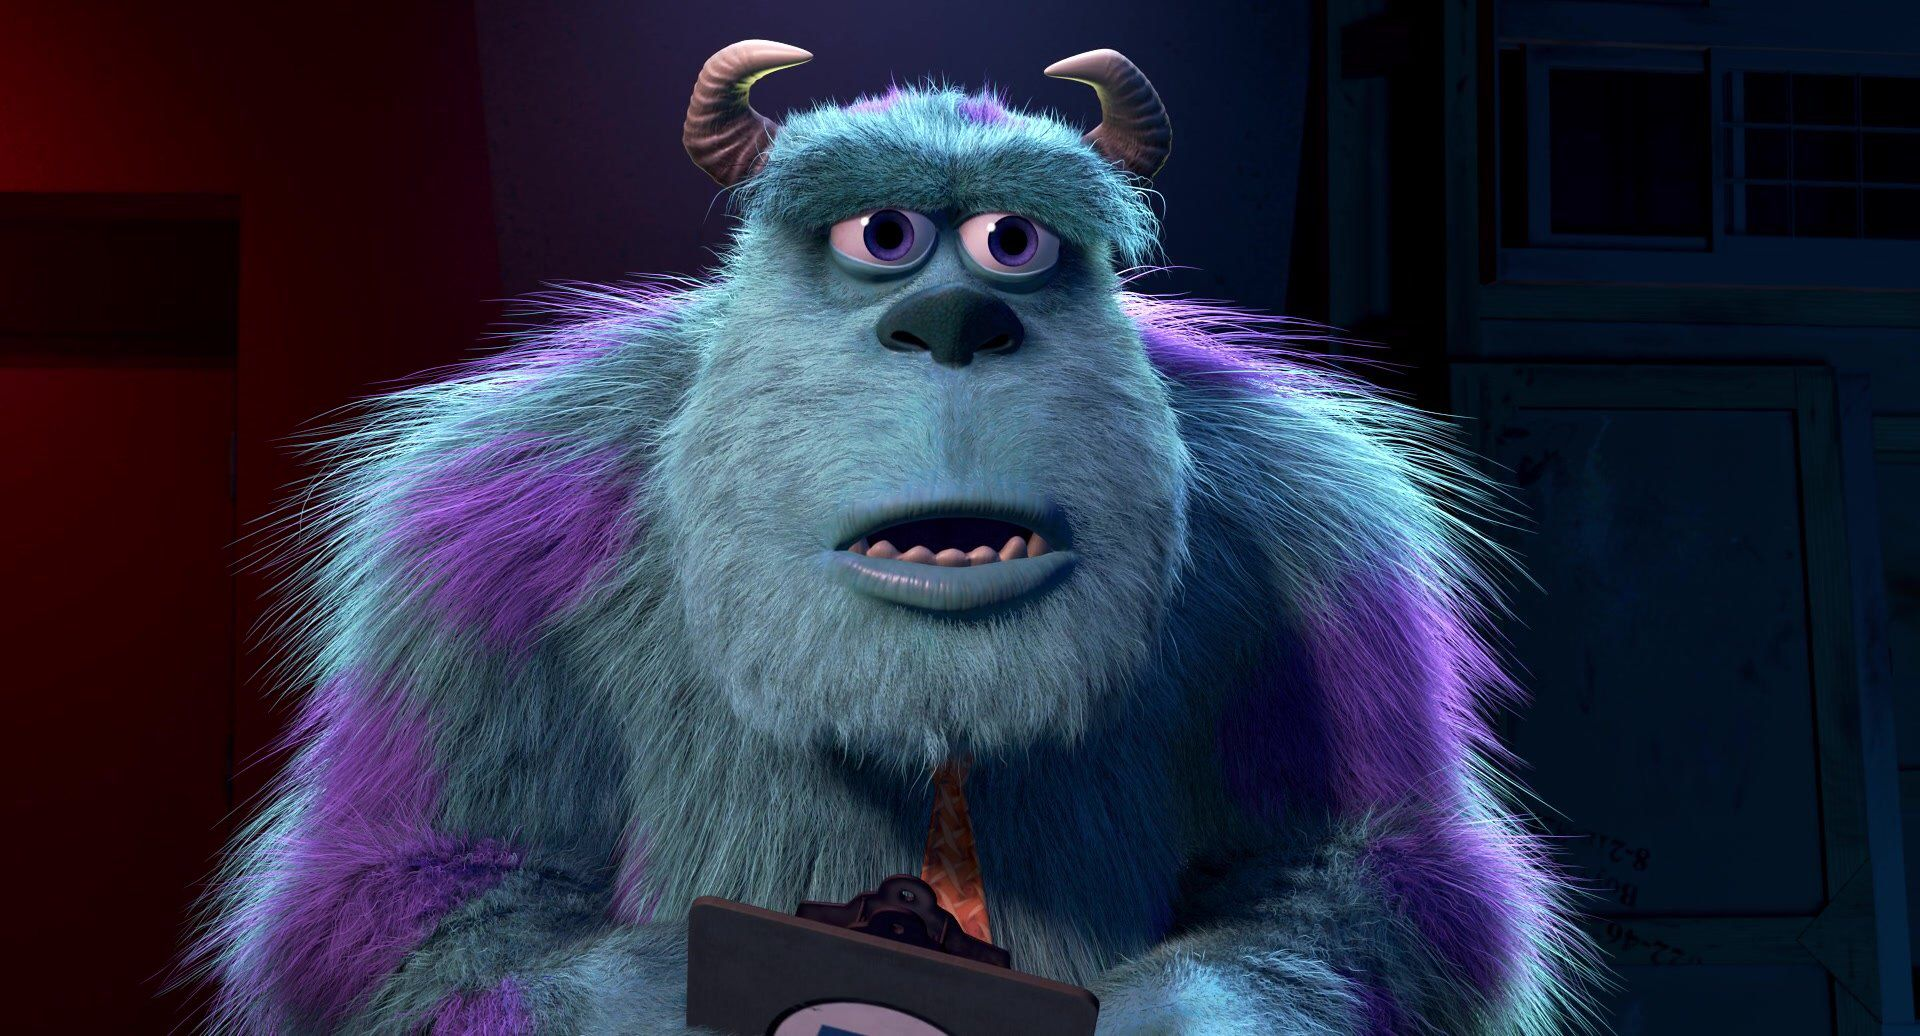 Pin by Anthony Peña on Monsters, Inc. | Pixar characters ...